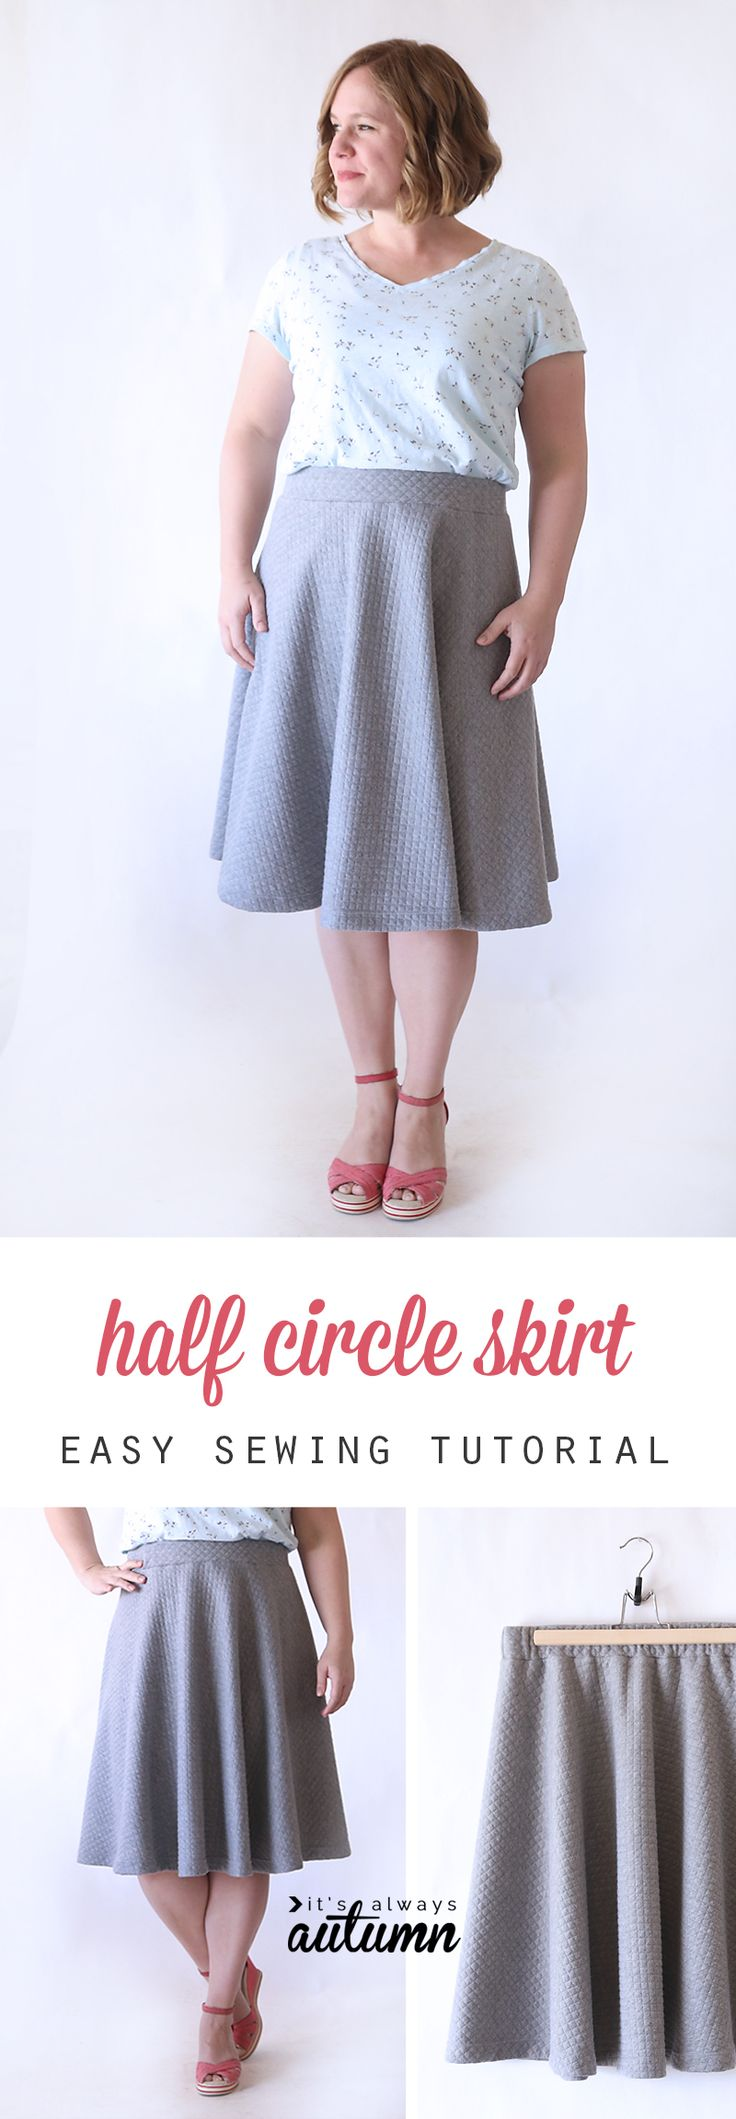 easy half circle skirt sewing tutorial - It's Always Autumn